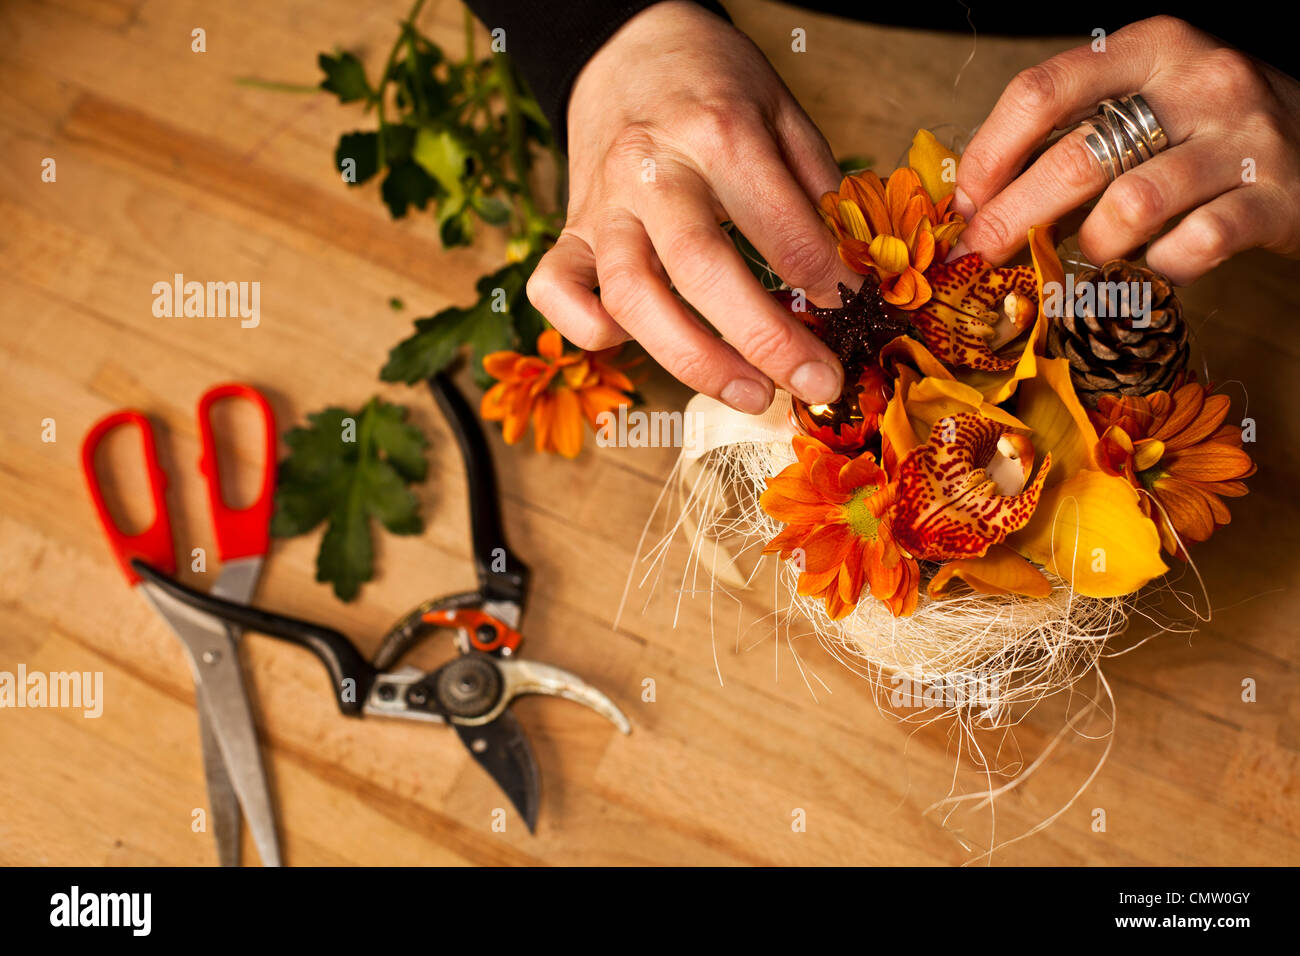 Florist preparing a bouquet - Stock Image